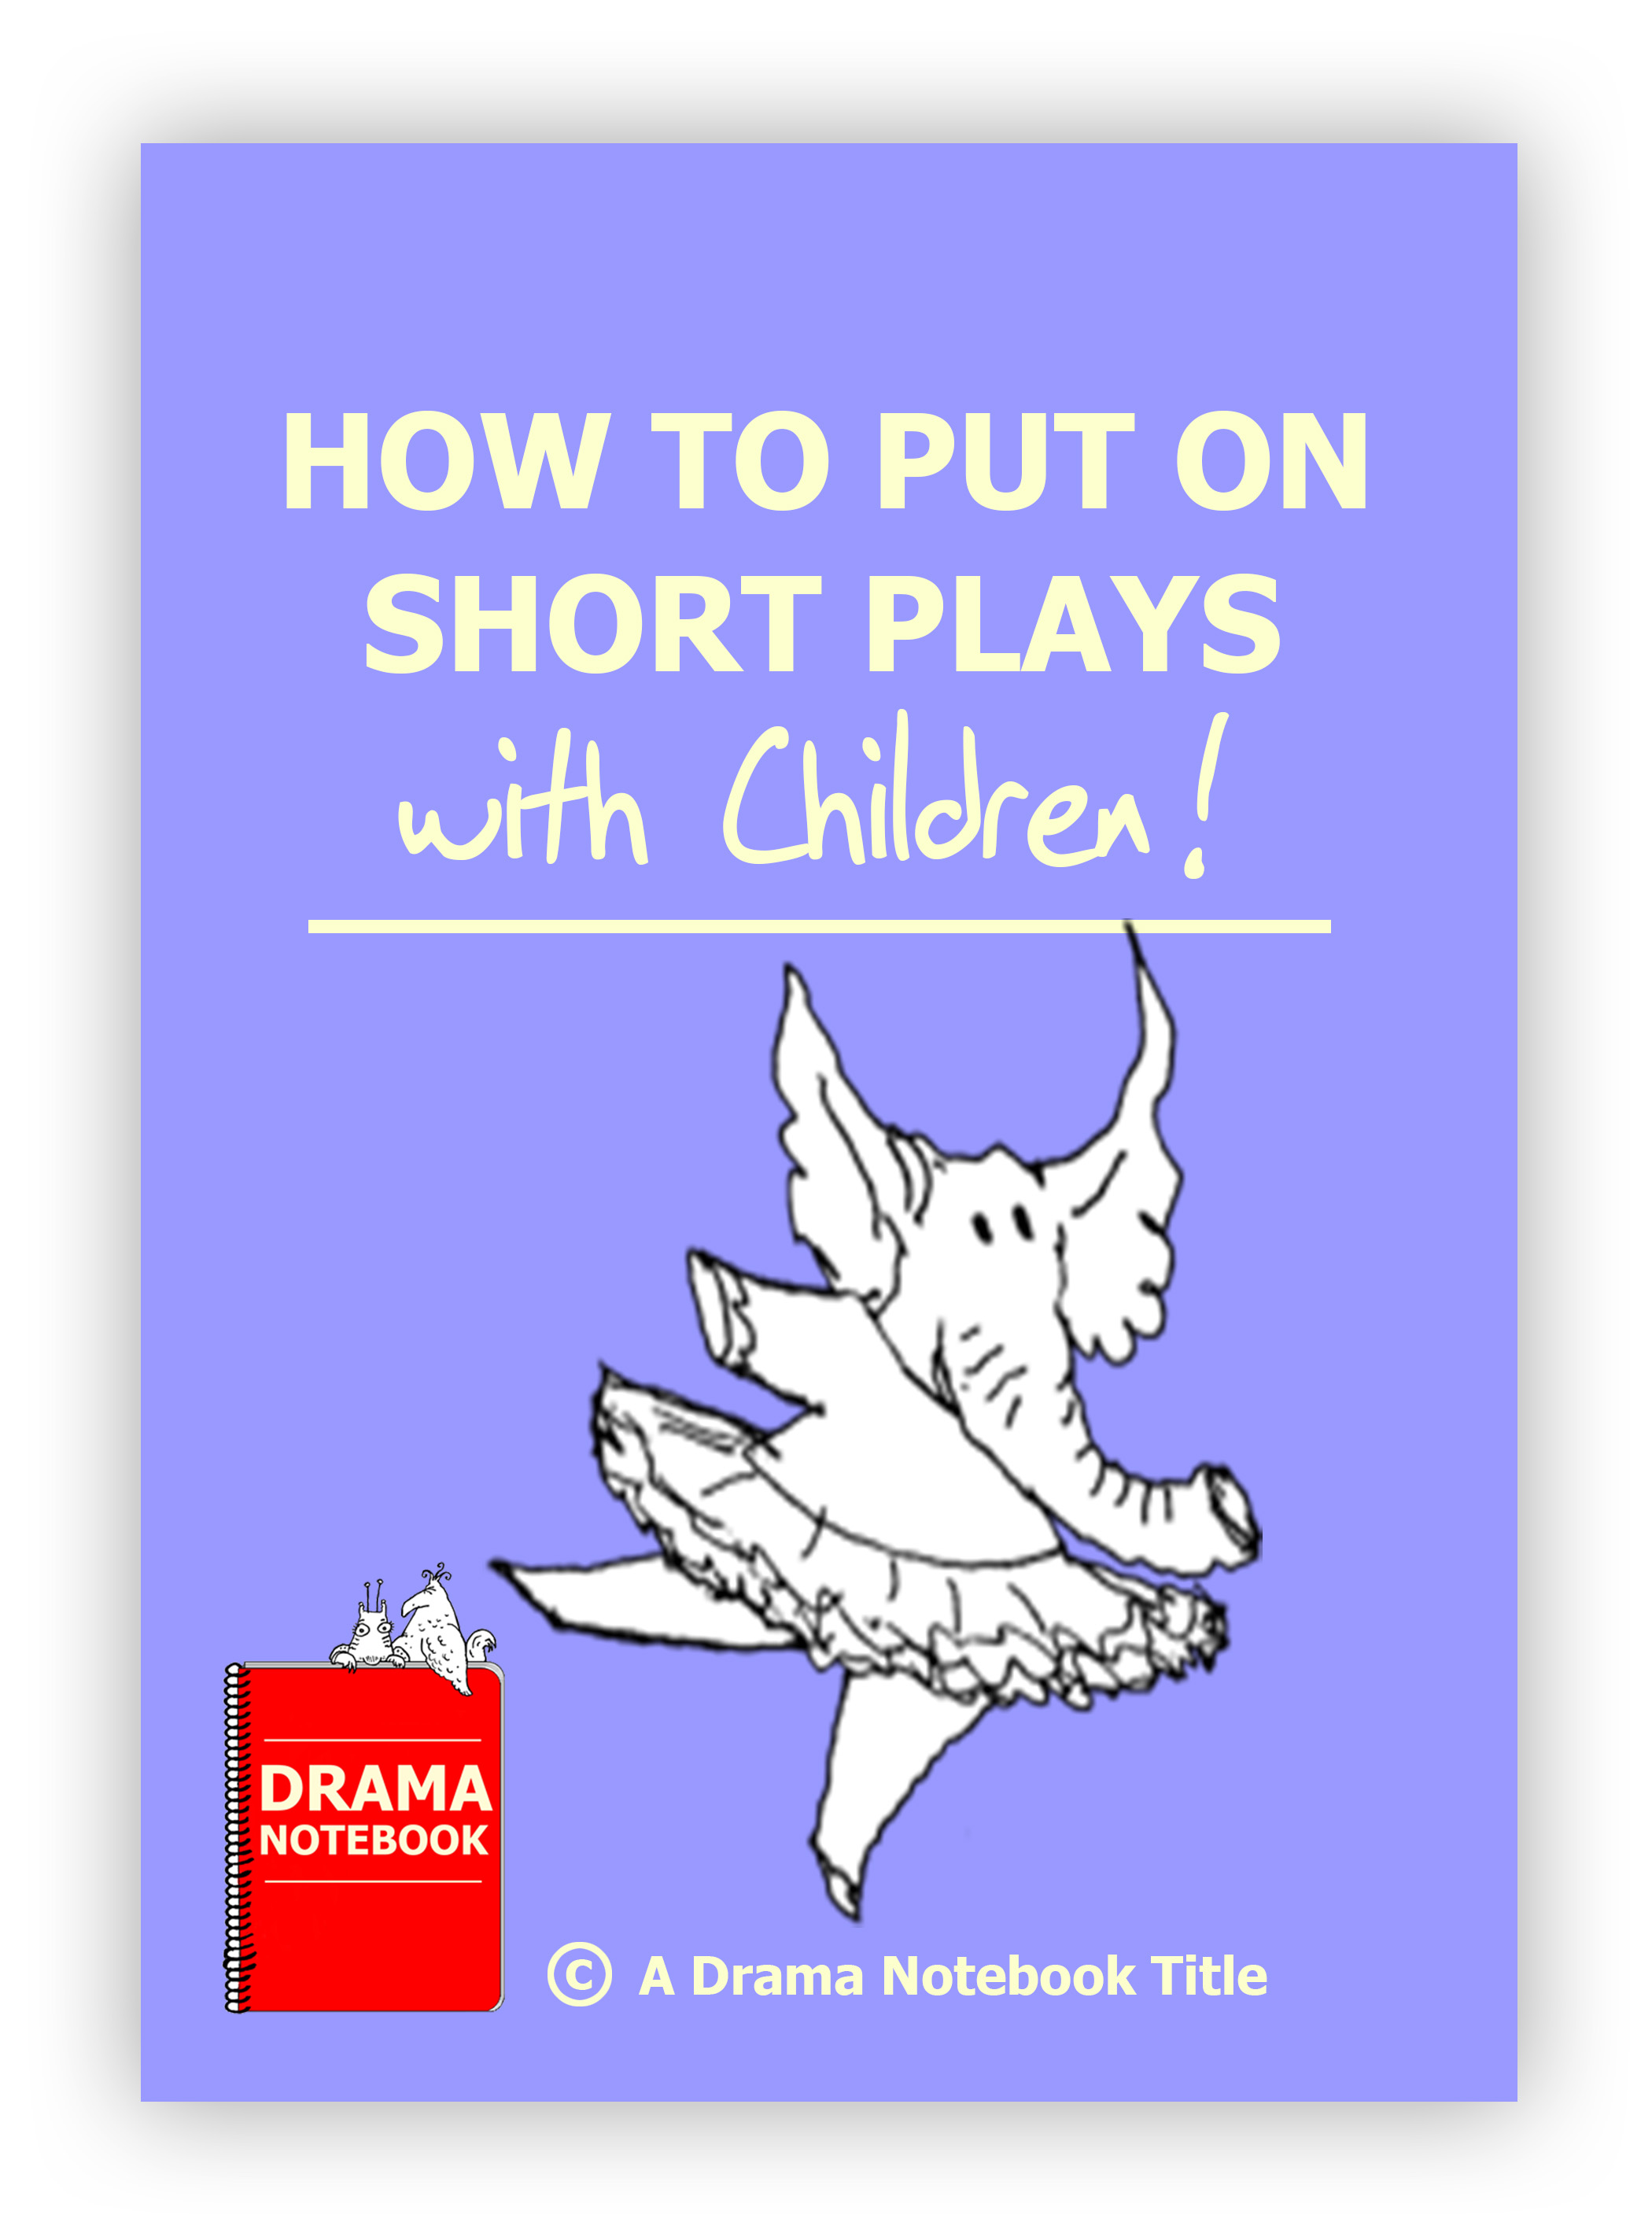 How To Put On Short Plays in Schools